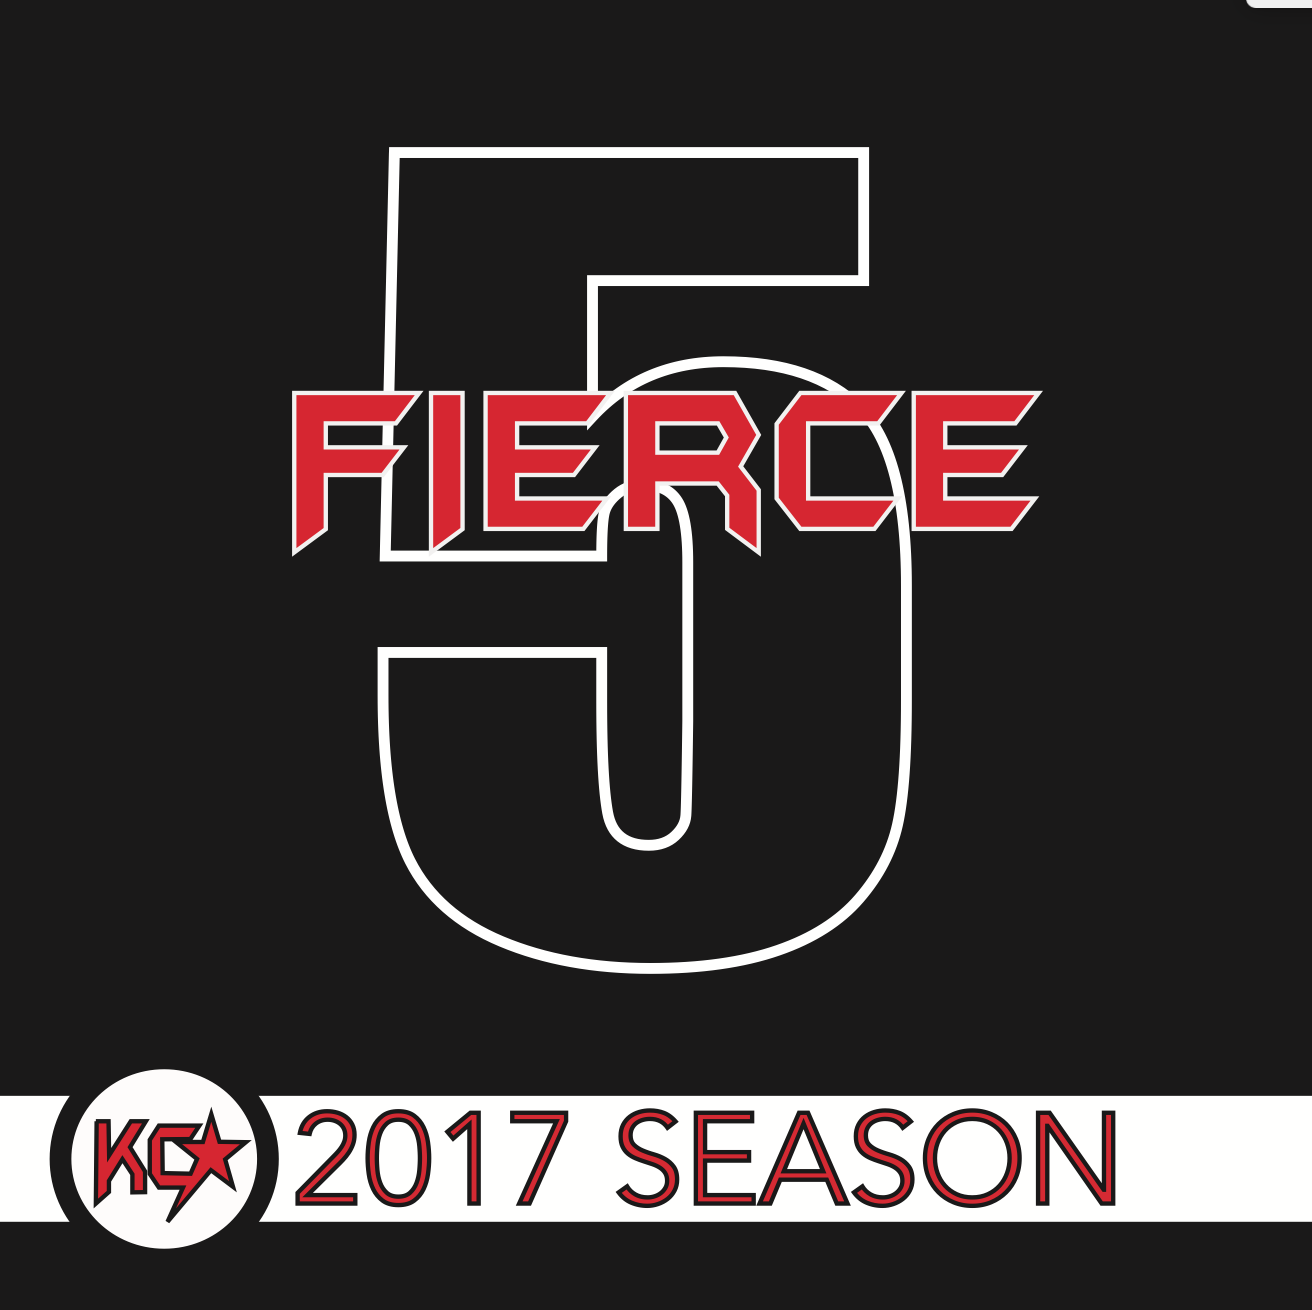 fierce52017.png